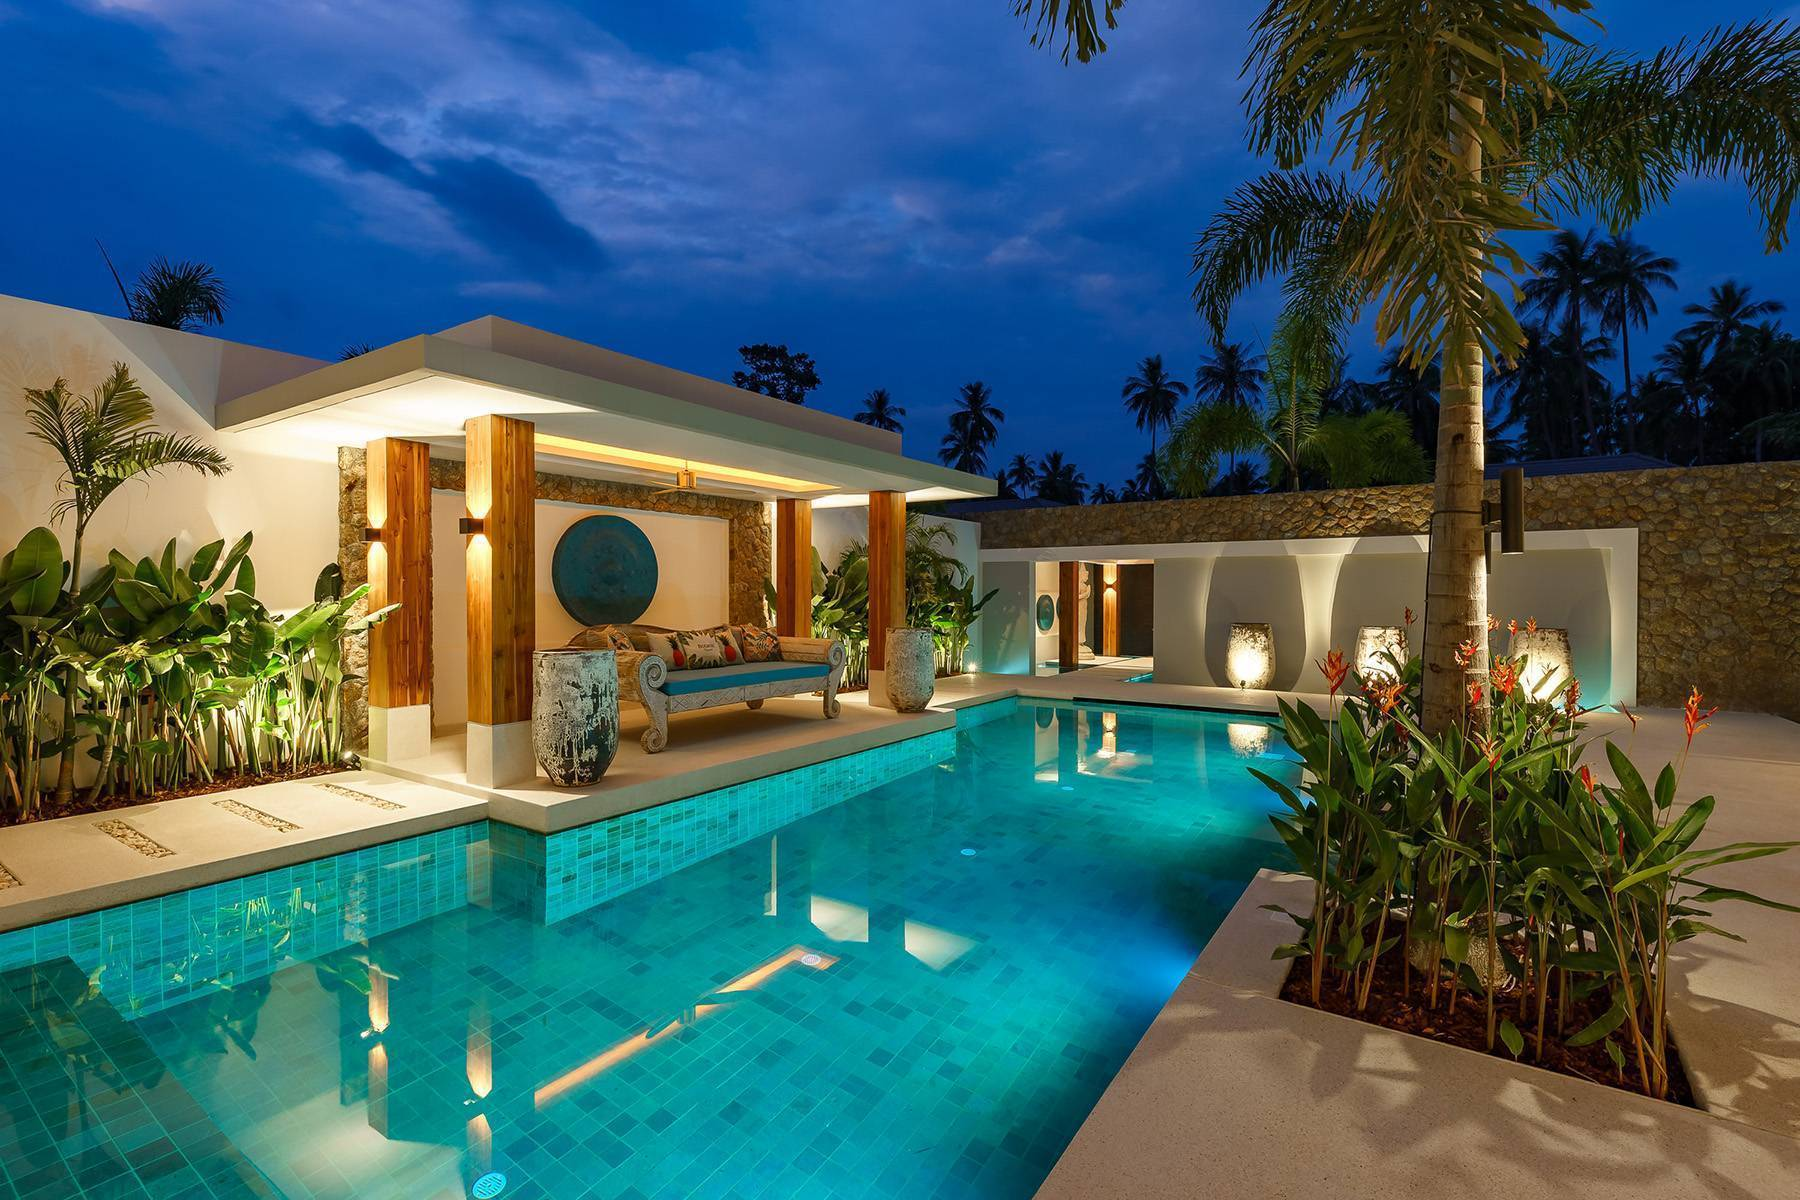 Balinese 3 Bedroom Signature Villa for Sale – Maenam: Balinese 3 Bedroom Signature Villa for Sale – Maenam